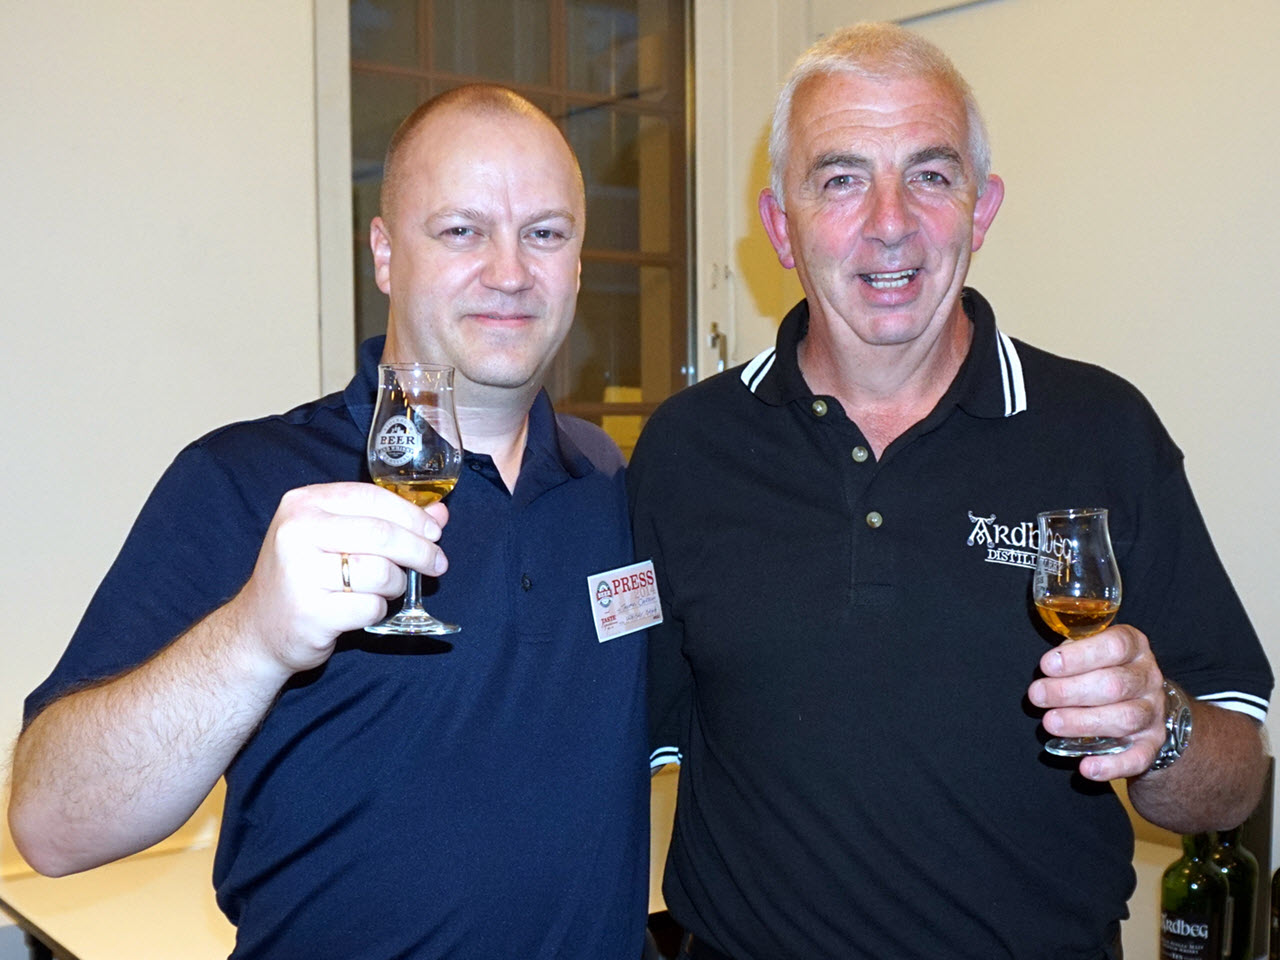 Stockholm Beer and Whisky Festival 2014 - mickey heads